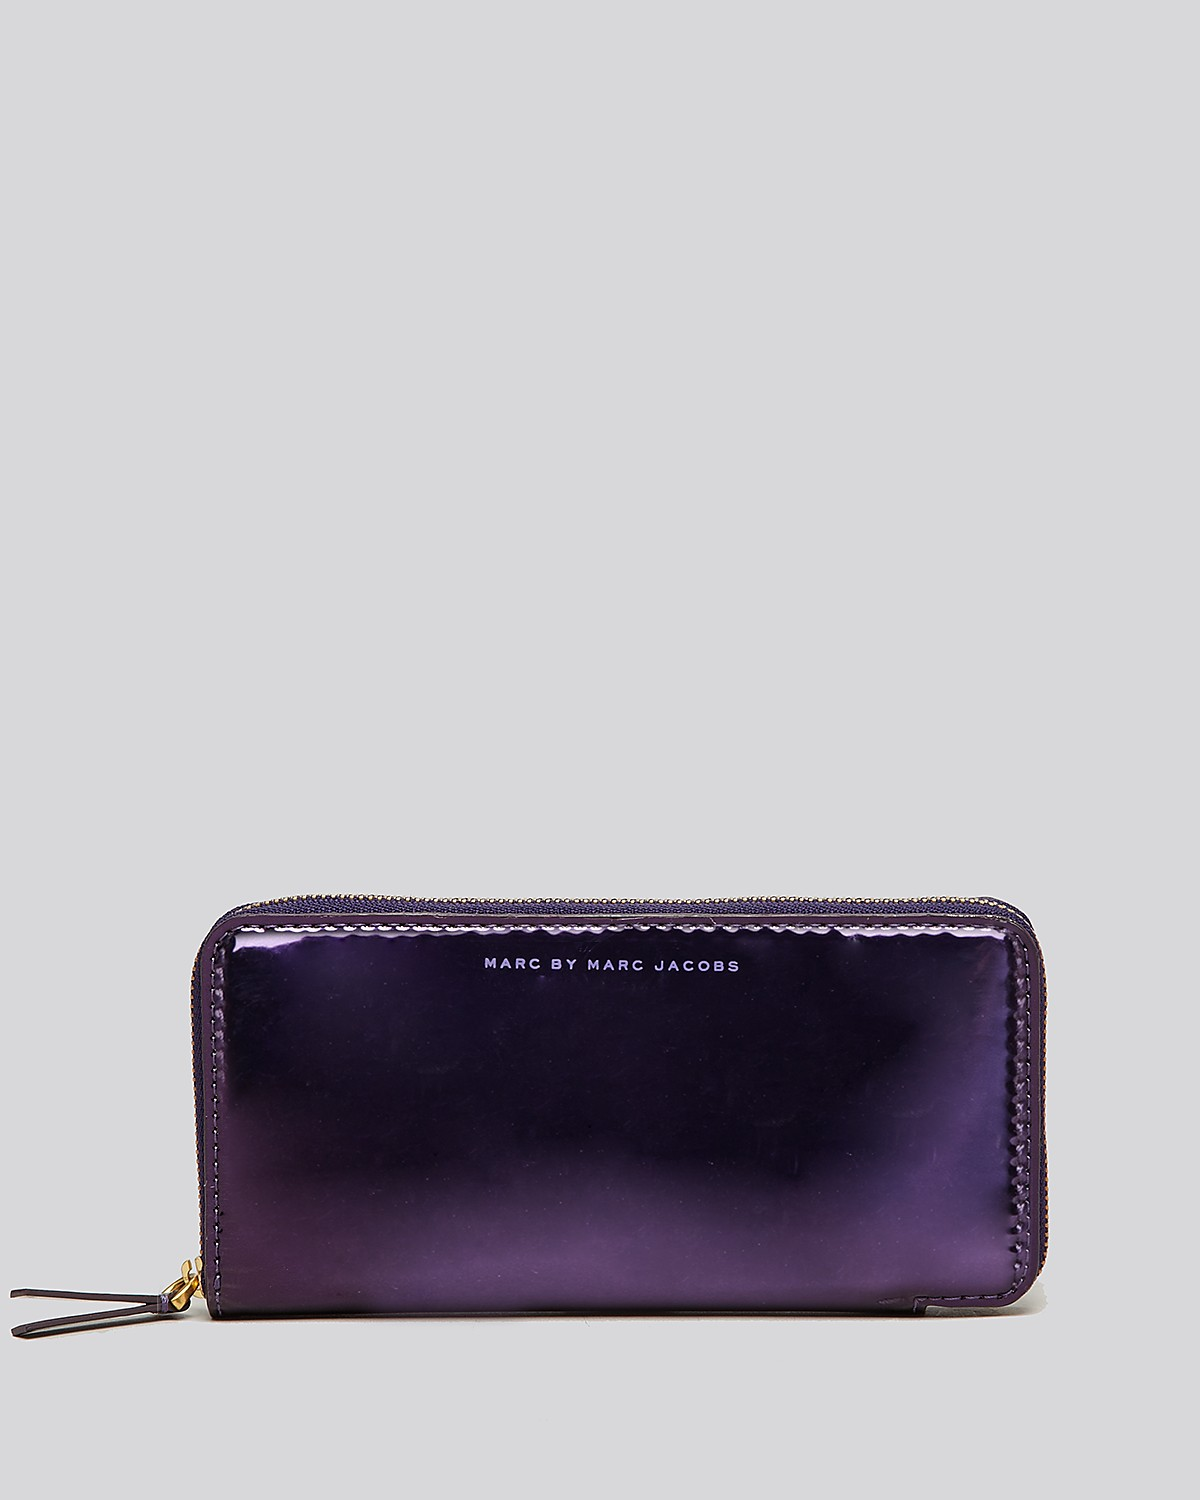 MARC BY MARC JACOBS Wallet - Techno Hologram Slim Zippy | Bloomingdale's